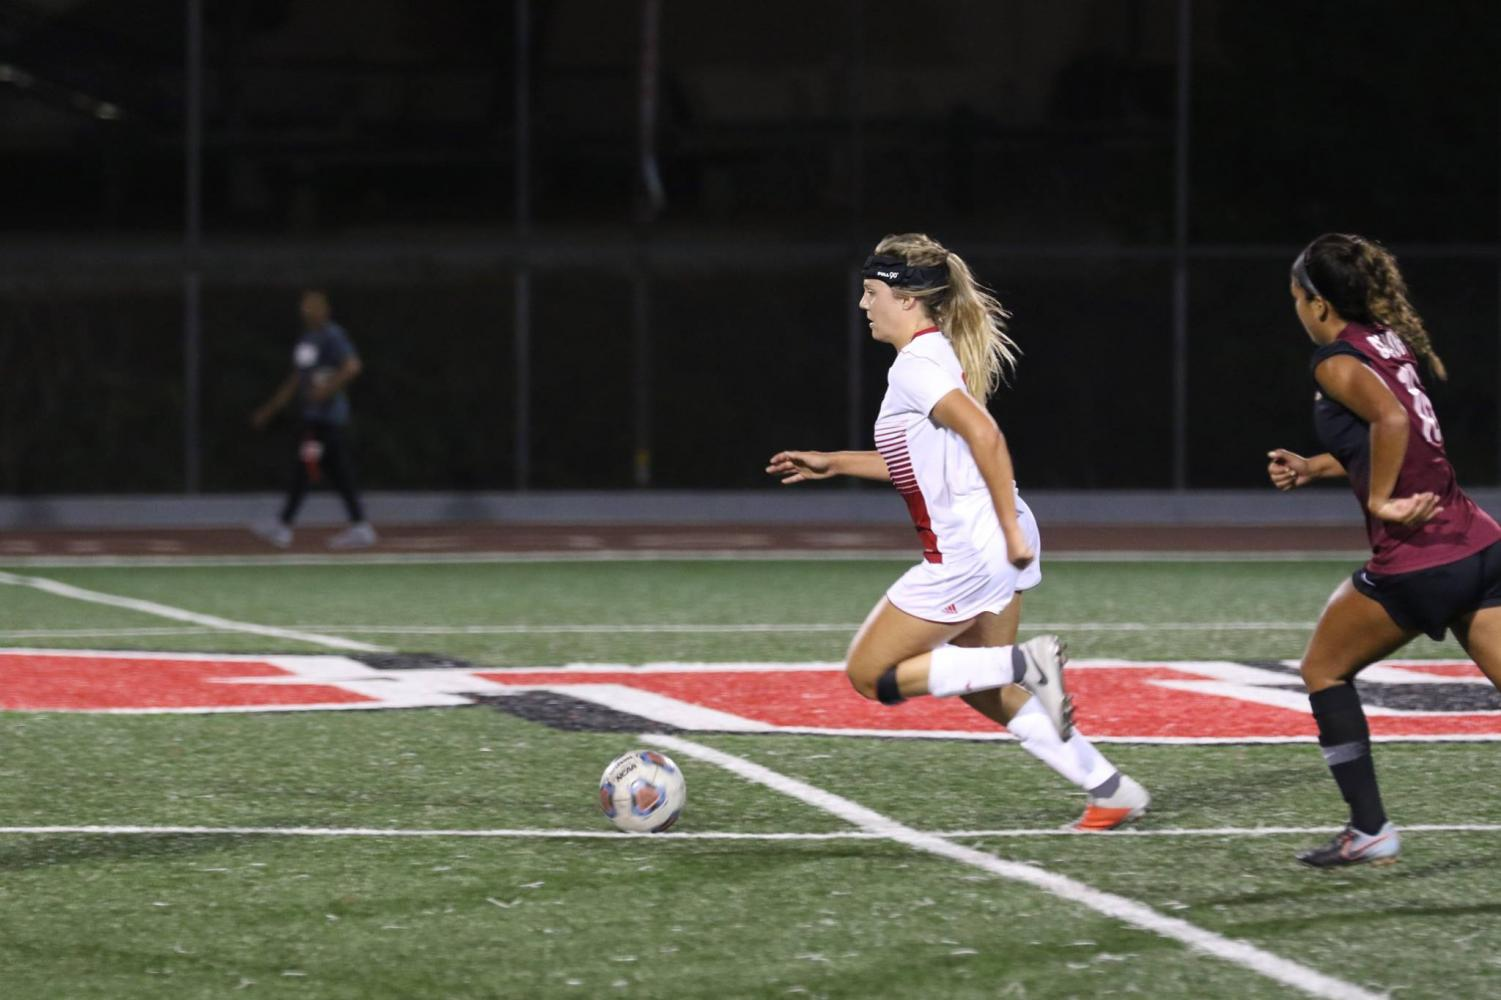 Junior forward Sarah Jeffries handles the ball during the Eagles' game against Cal State Dominguez Hills on Aug. 30, 2018. Courtesy George Rodriguez/Biola Athletics